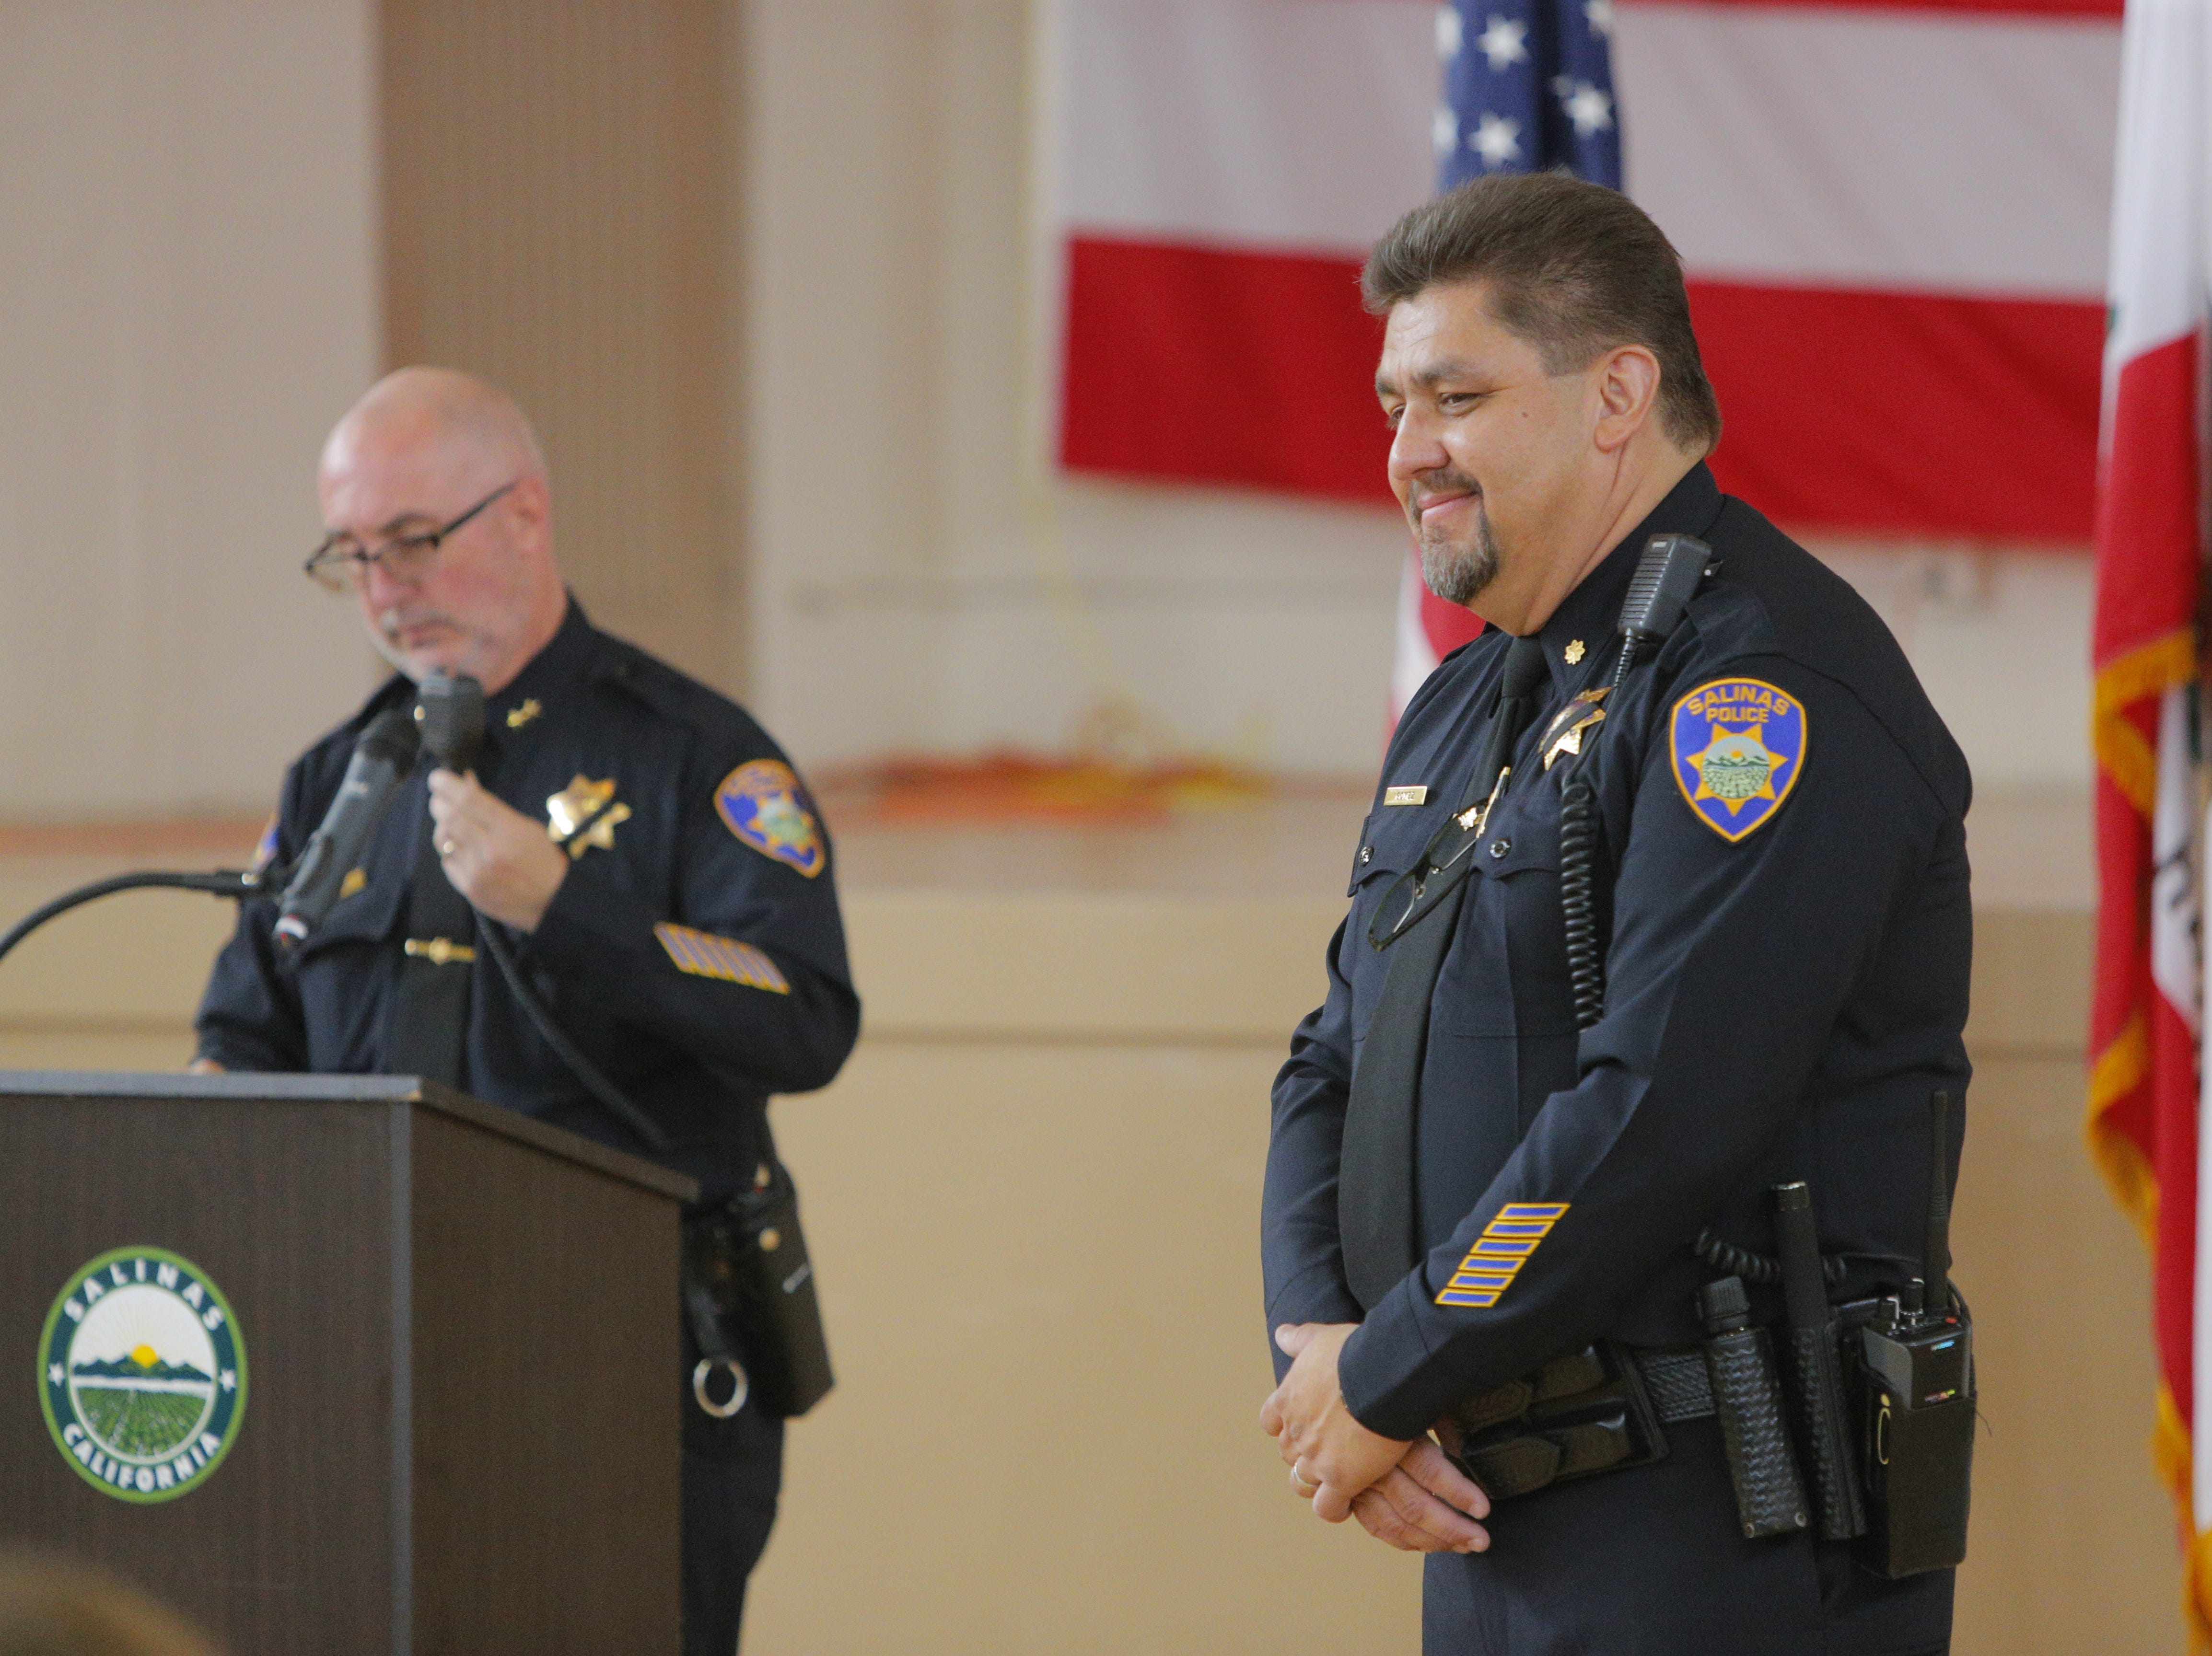 At the end of the ceremony honoring retiring Salinas police Cmdr. Henry Gomez, dispatchers announced his retirement over the radio Tuesday.